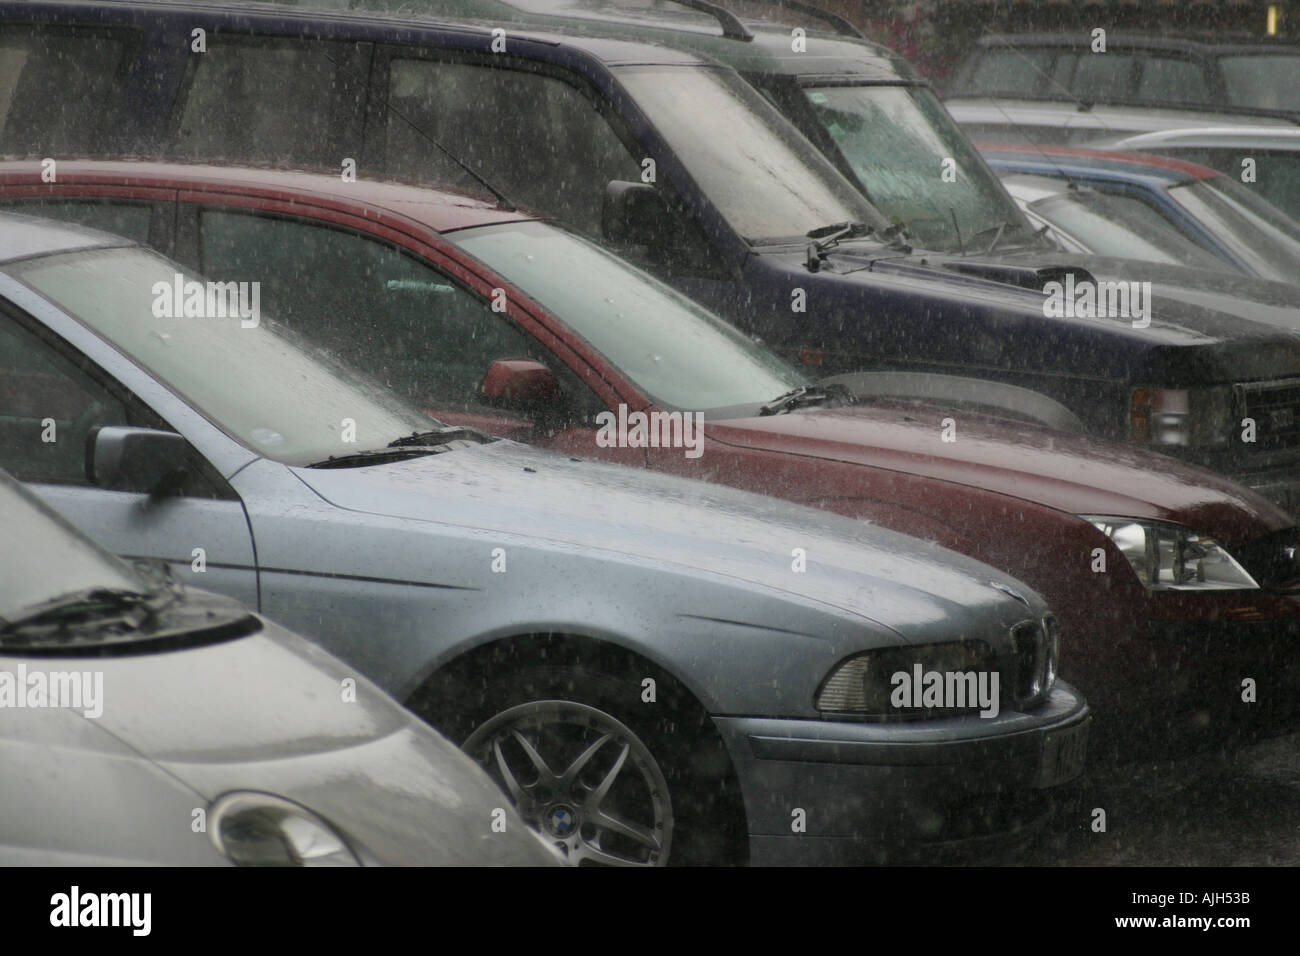 Parked cars in a summer rainstorm in Devon uk - Stock Image